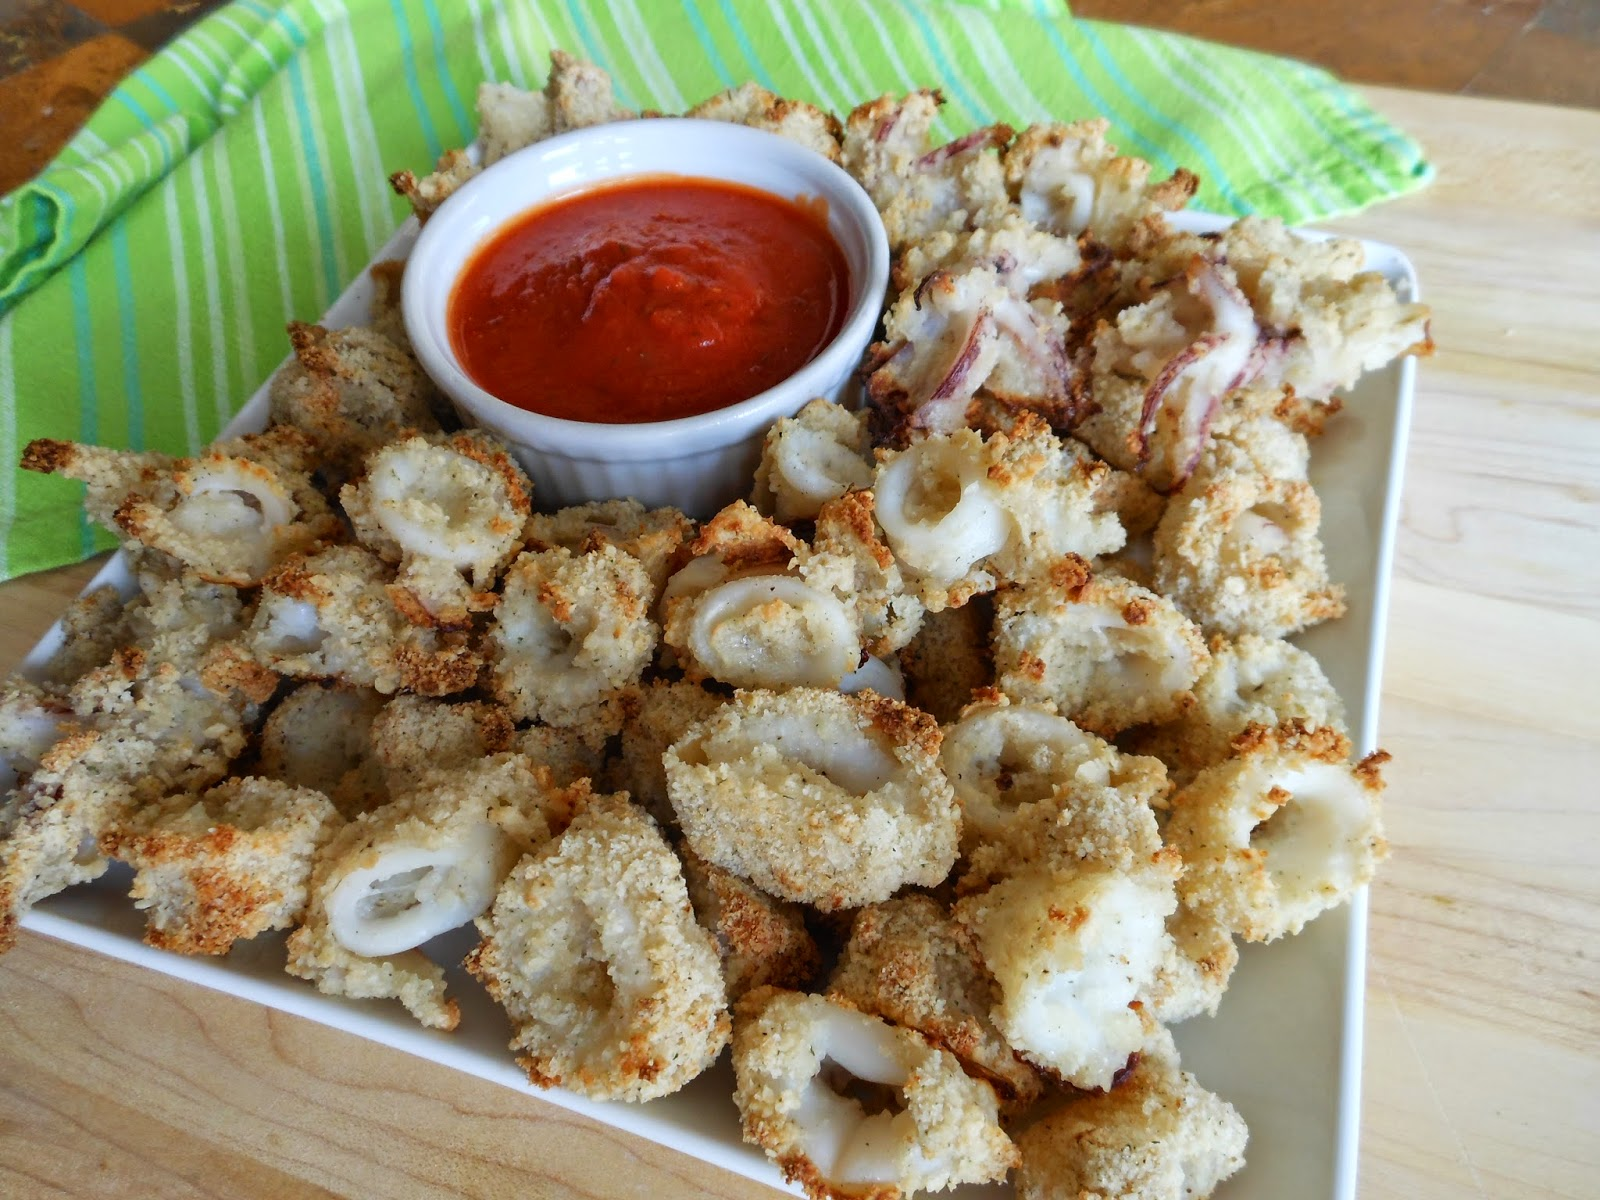 Healthy Eating: Crispy Oven-Fried Calamari1